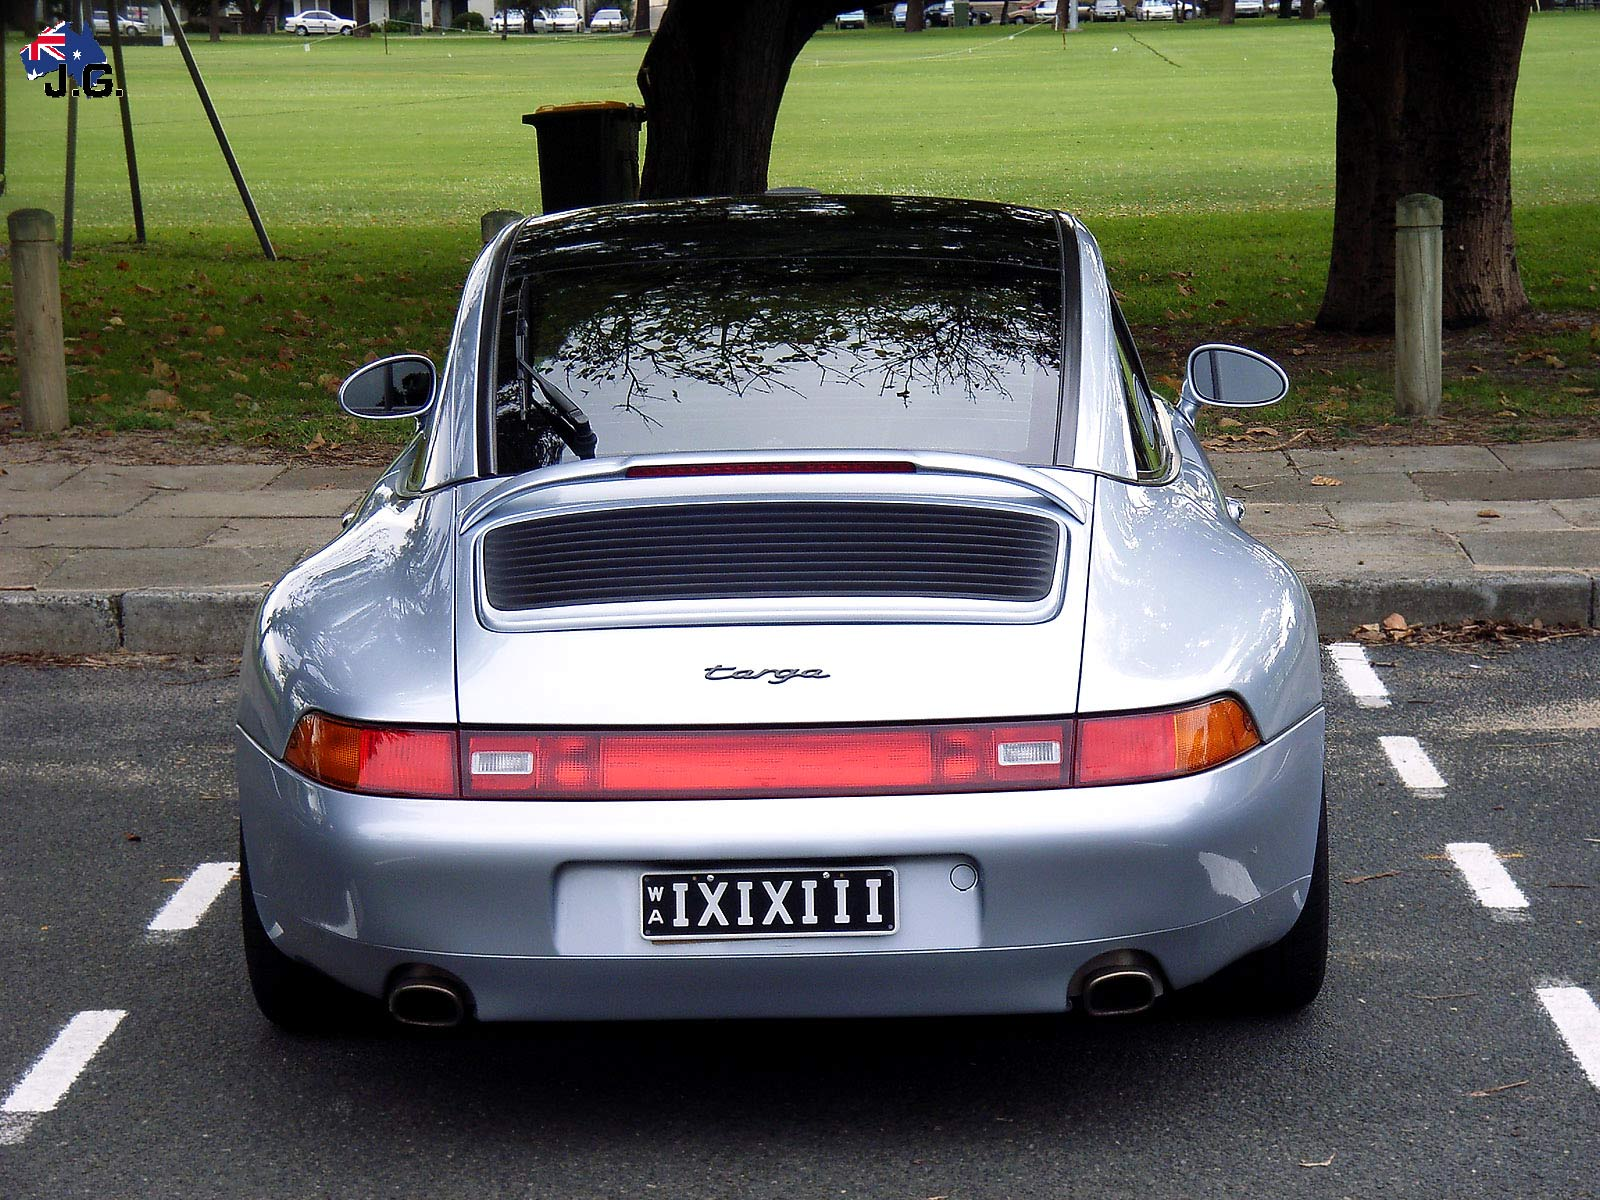 porsche 993 targa (3) dingo Perth Car Spotting